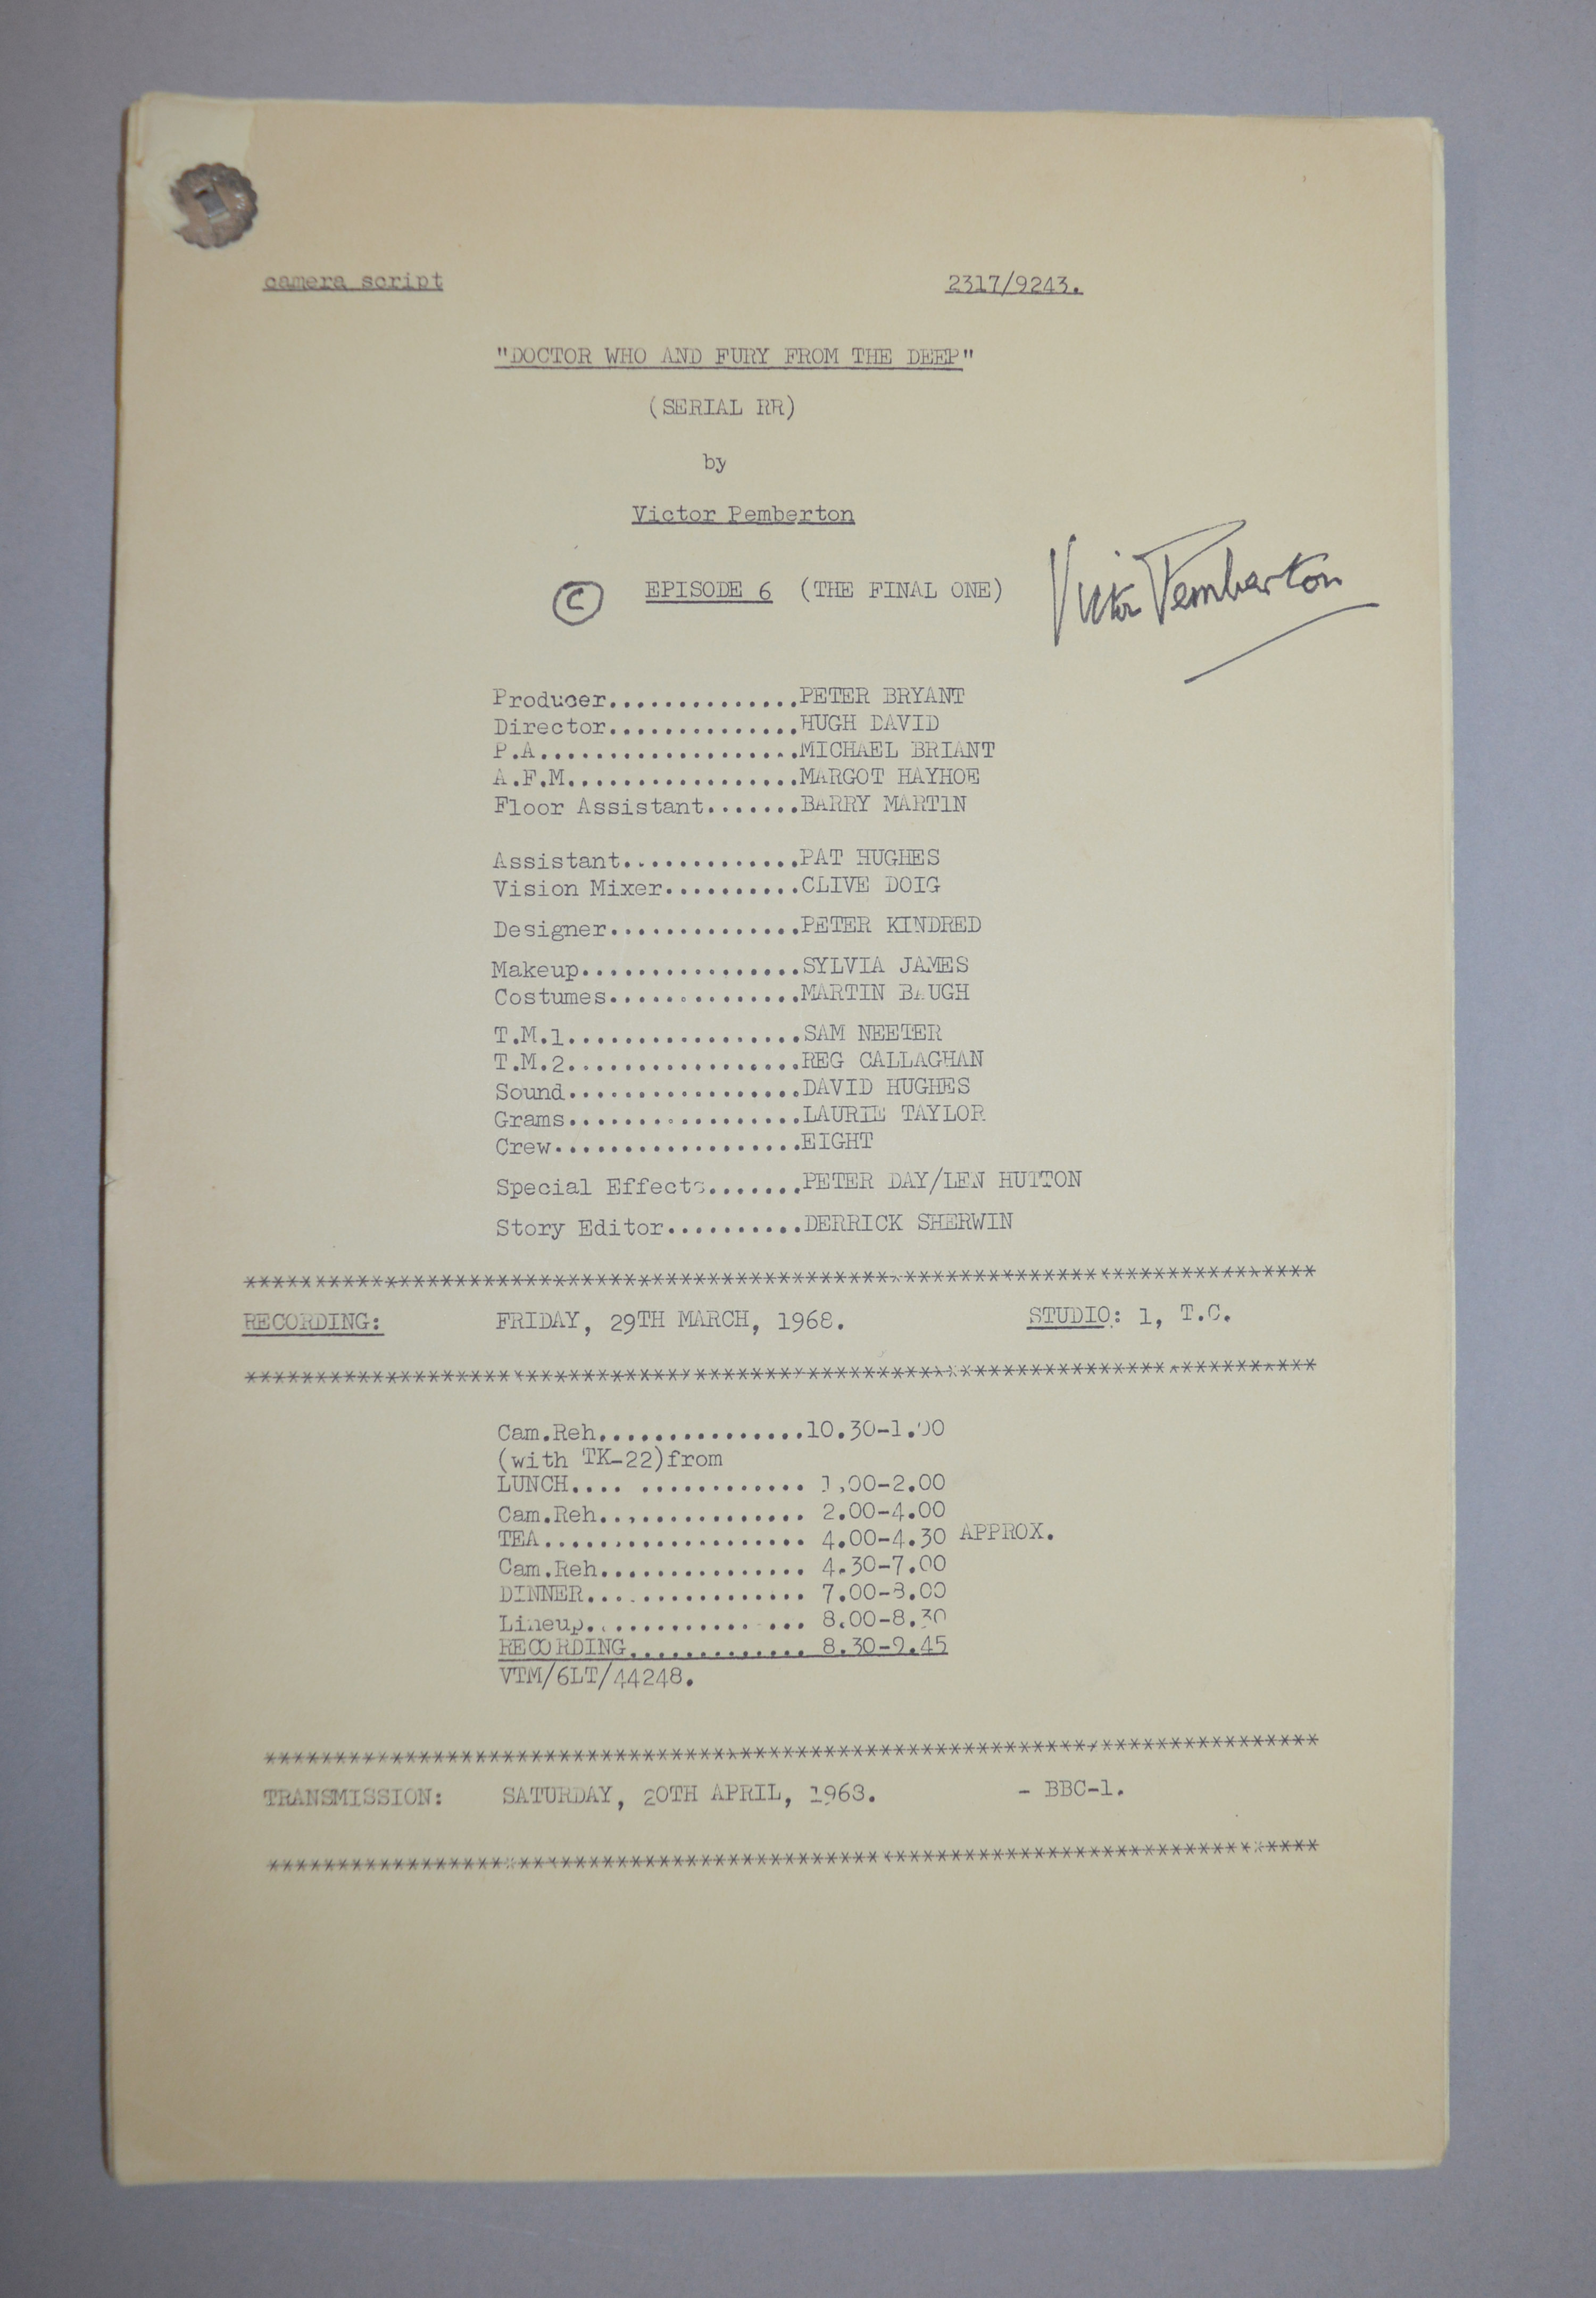 Doctor Who (Dr Who) full set of 6 original camera scripts from the missing 1968 Dr Who episode - - Image 8 of 17